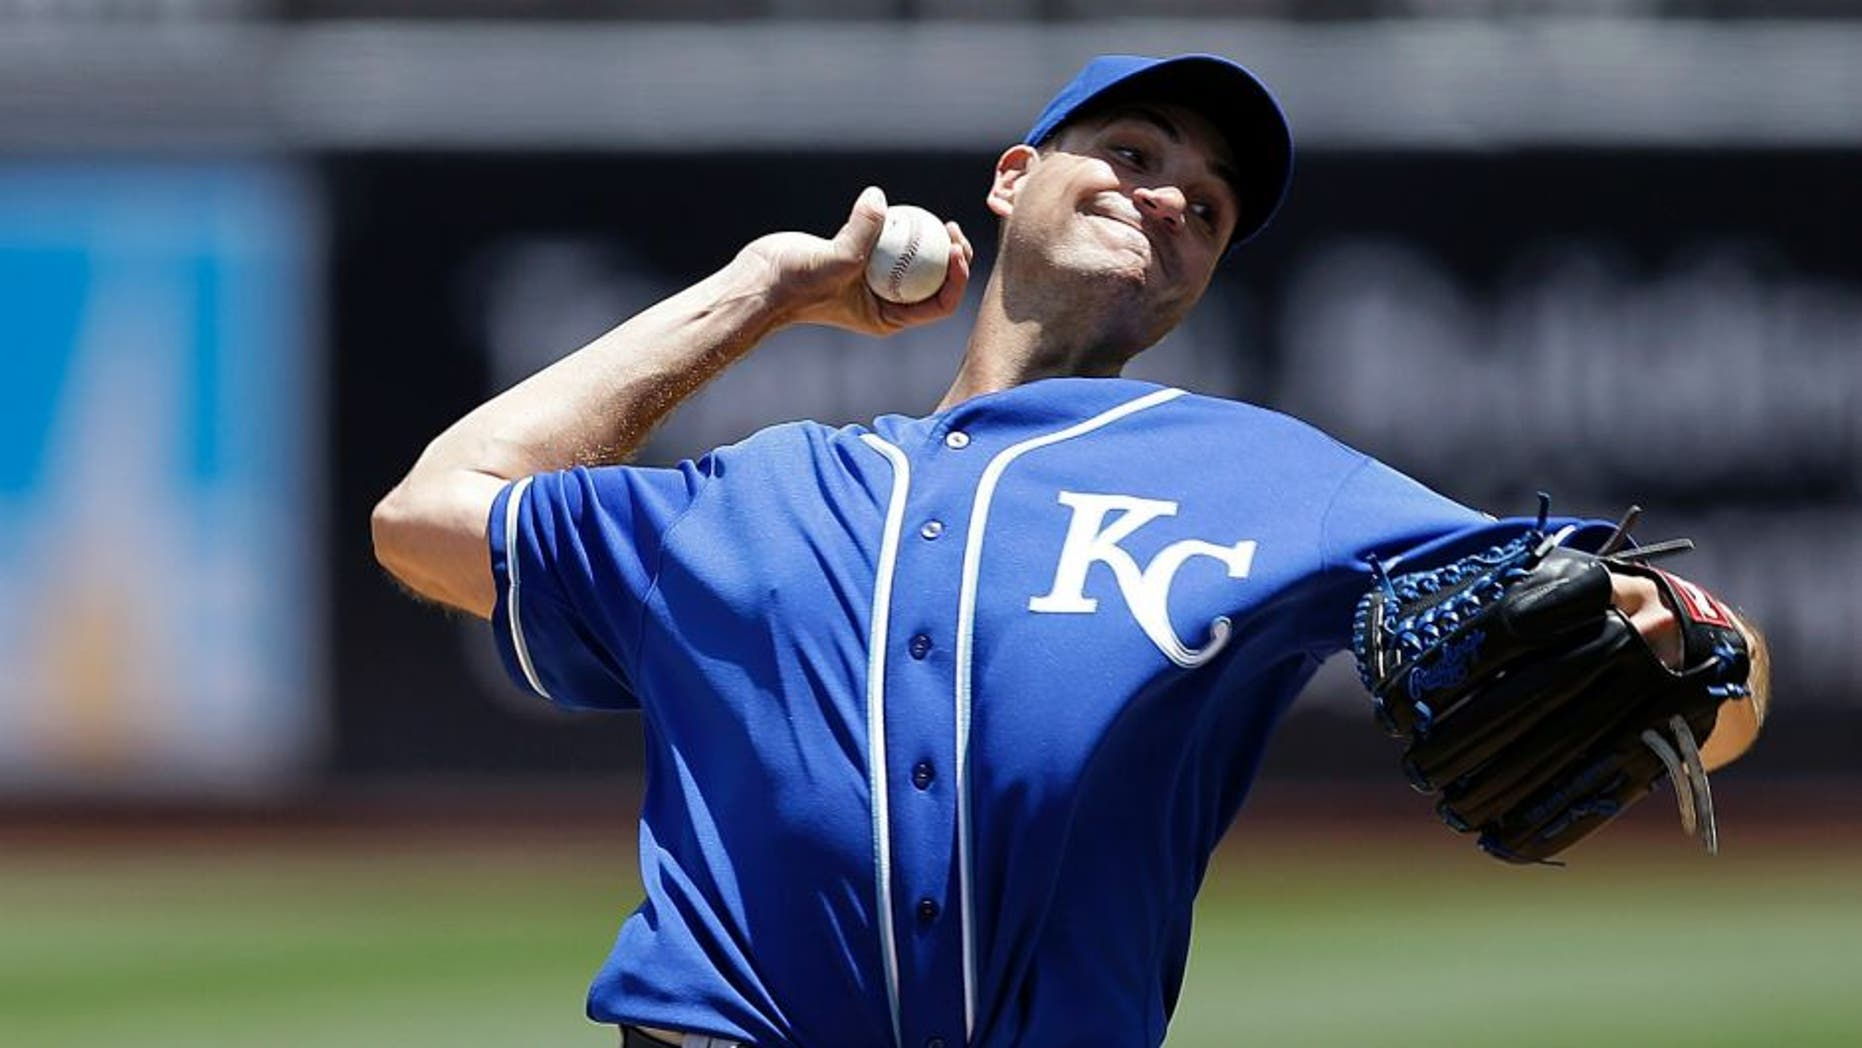 Kansas City Royals pitcher Chris Young works against the Oakland Athletics in the first inning of a baseball game Saturday, June 27, 2015, in Oakland, Calif. (AP Photo/Ben Margot)